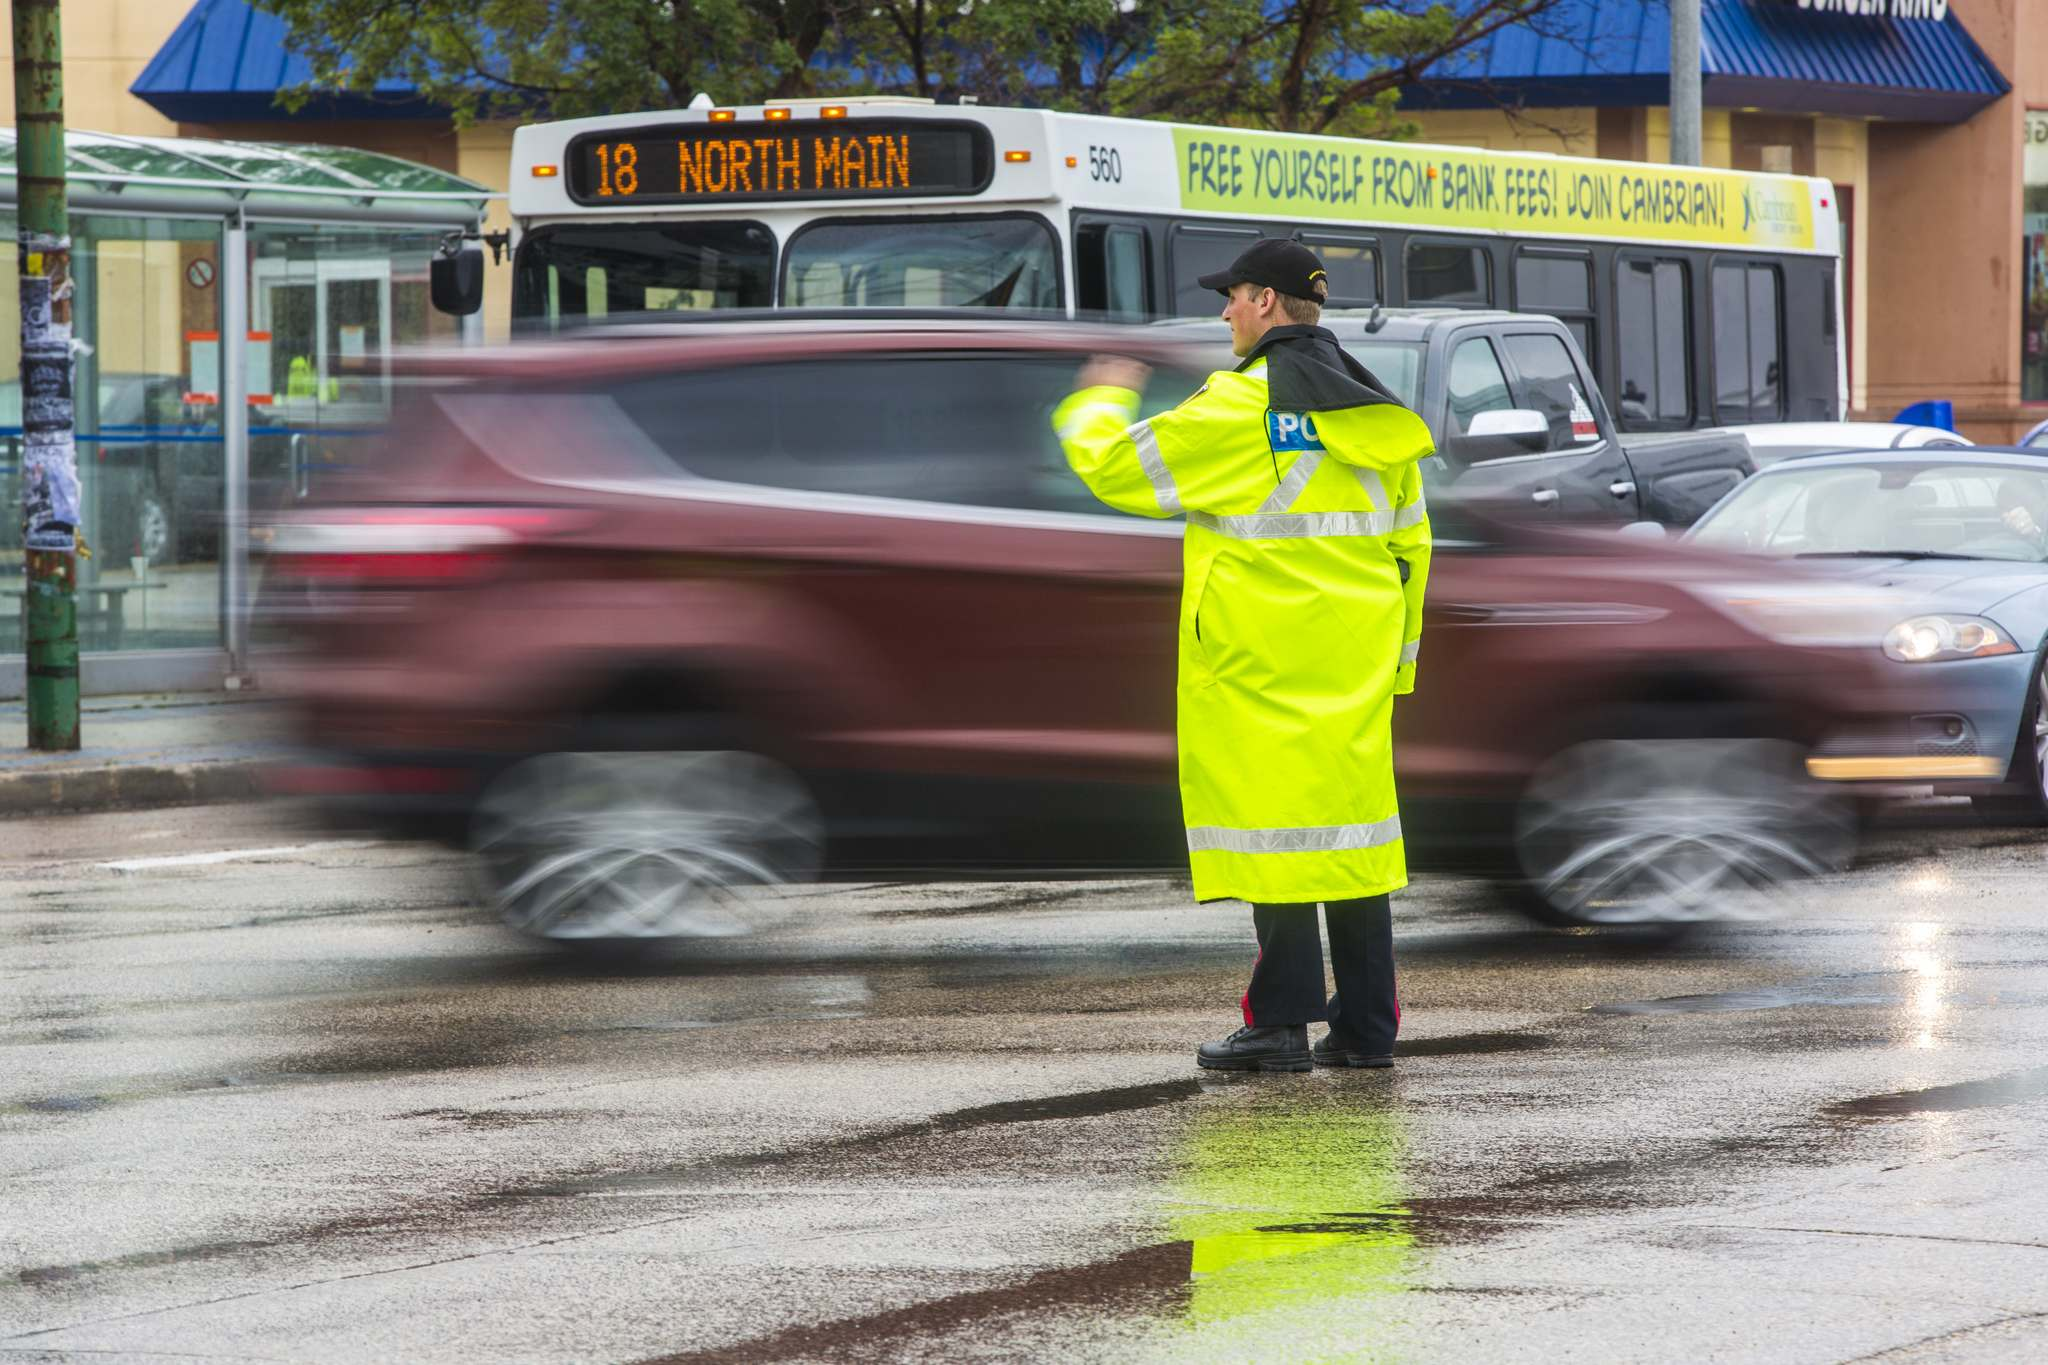 MIKAELA MACKENZIE / WINNIPEG FREE PRESS</p><p>Cadets and police direct morning traffic at Confusion Corner on Wednesday.</p>